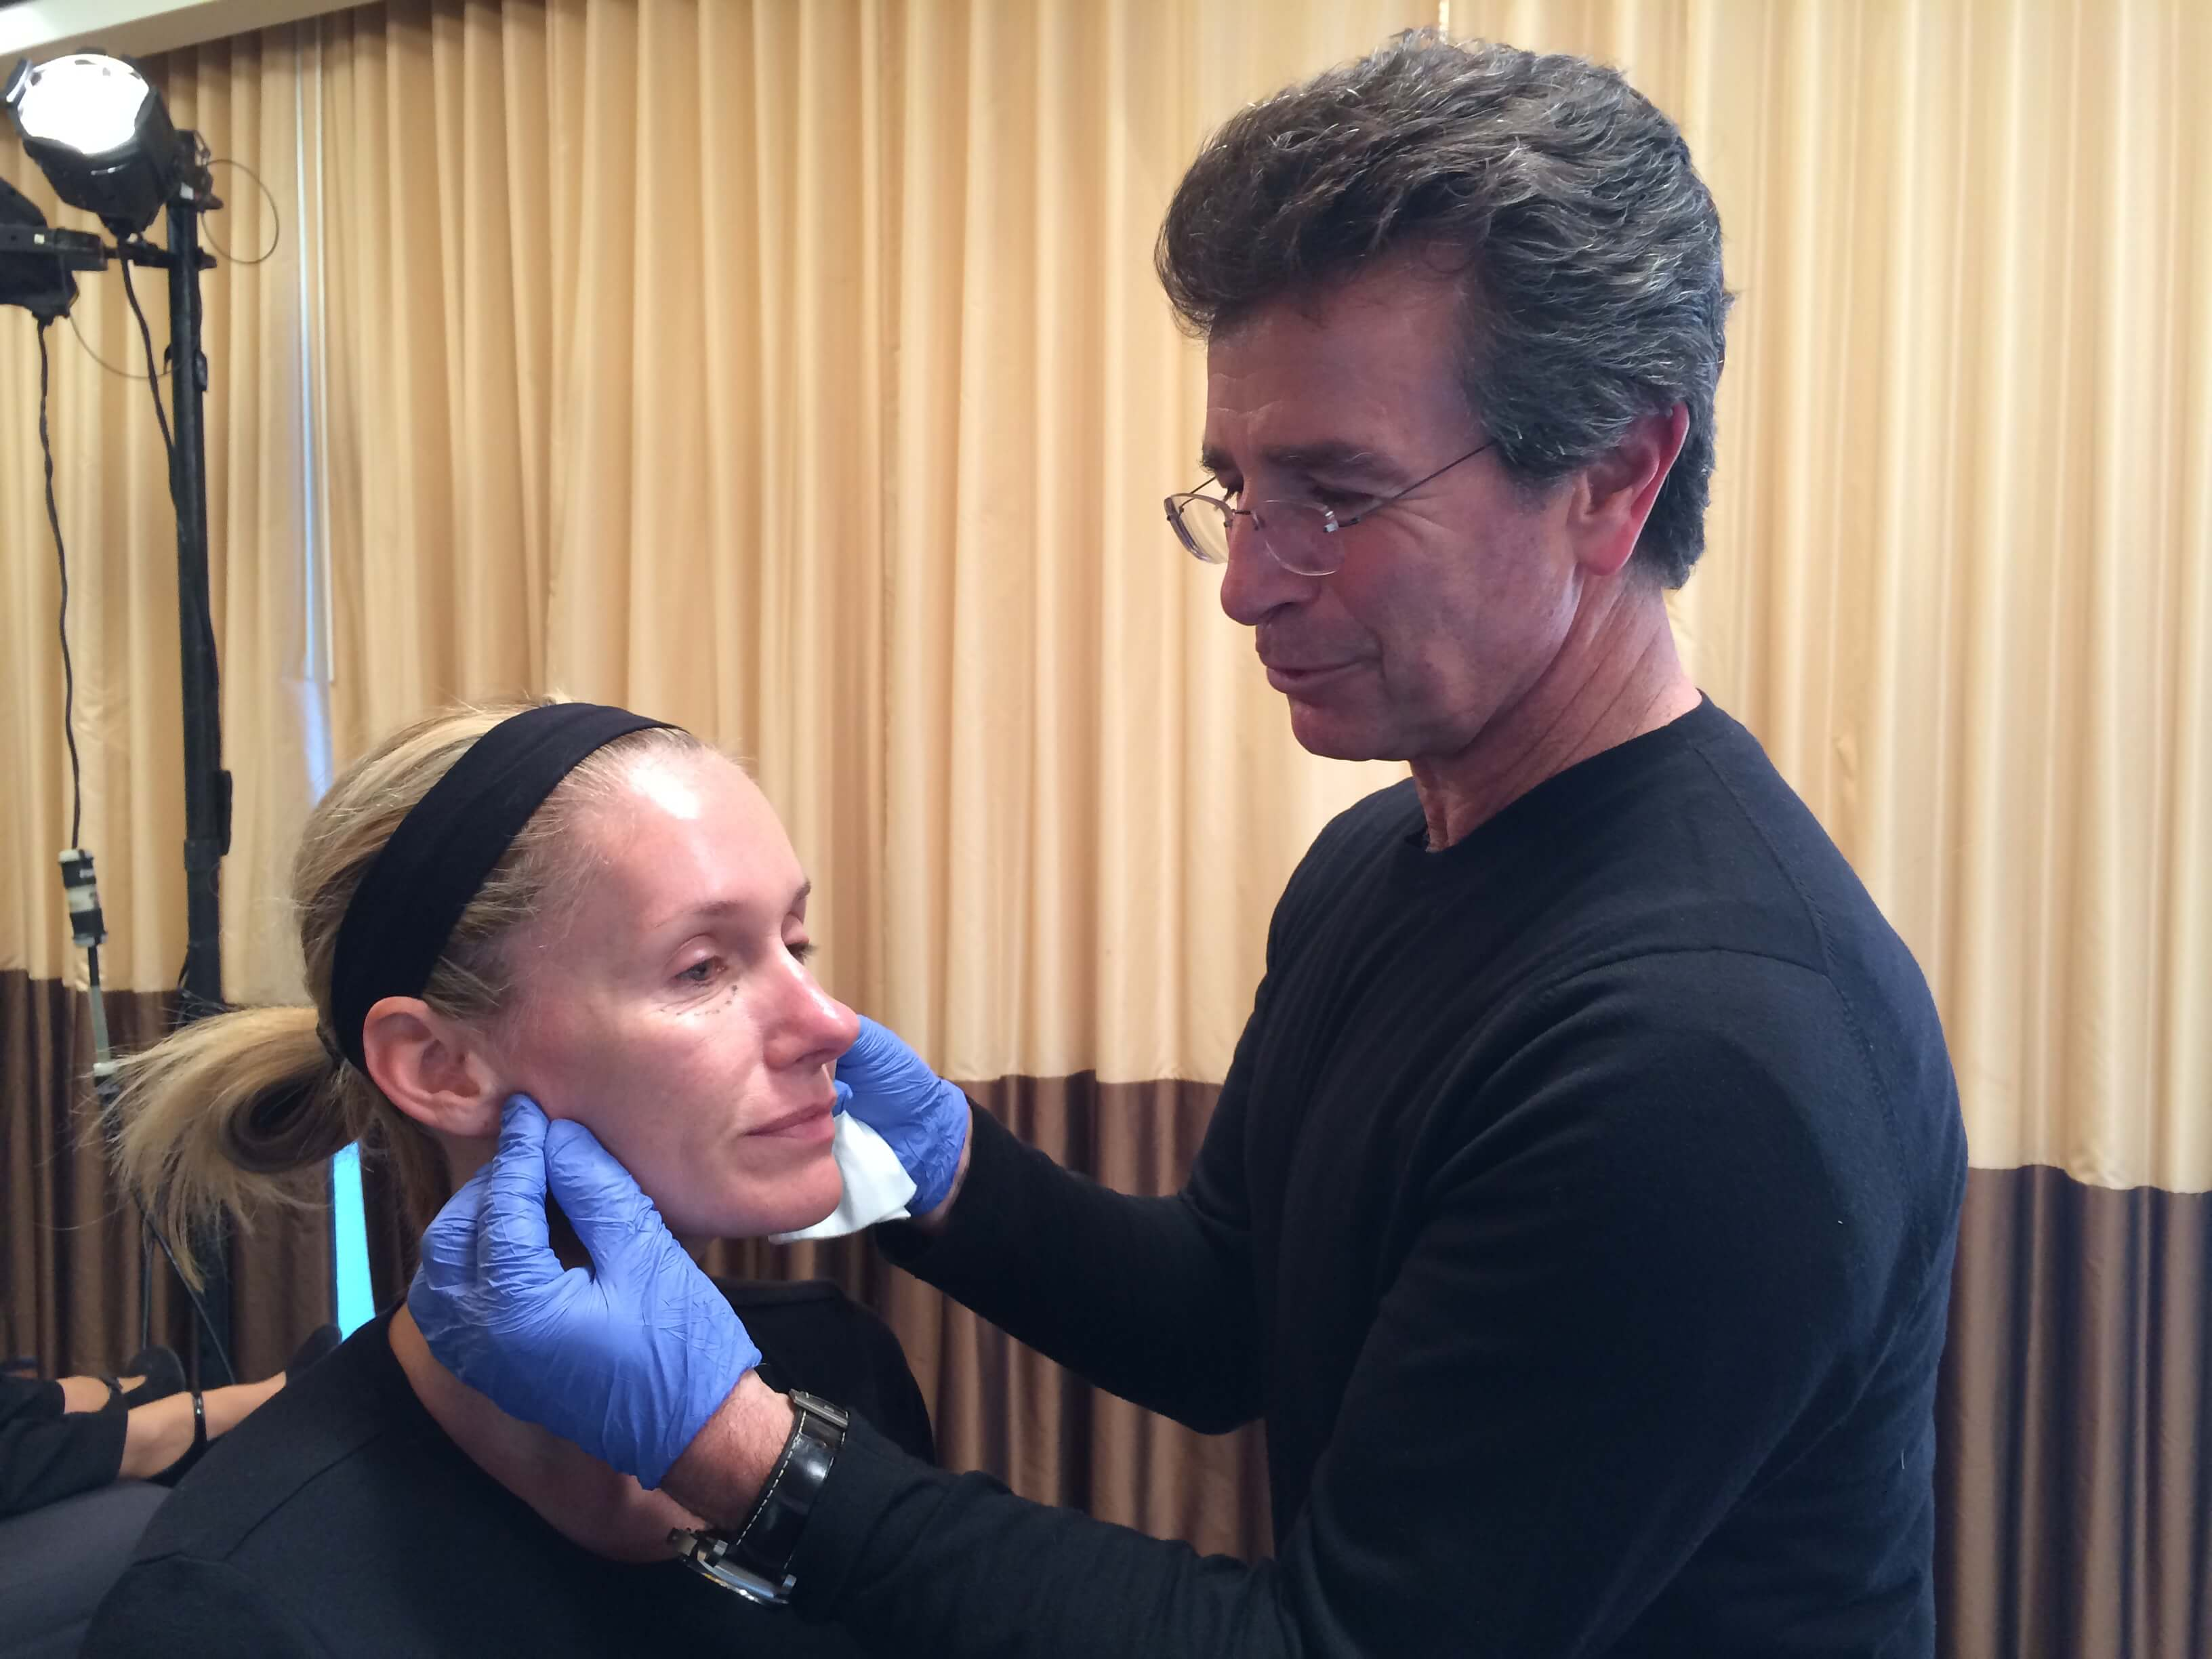 Dr. Persky treating patient